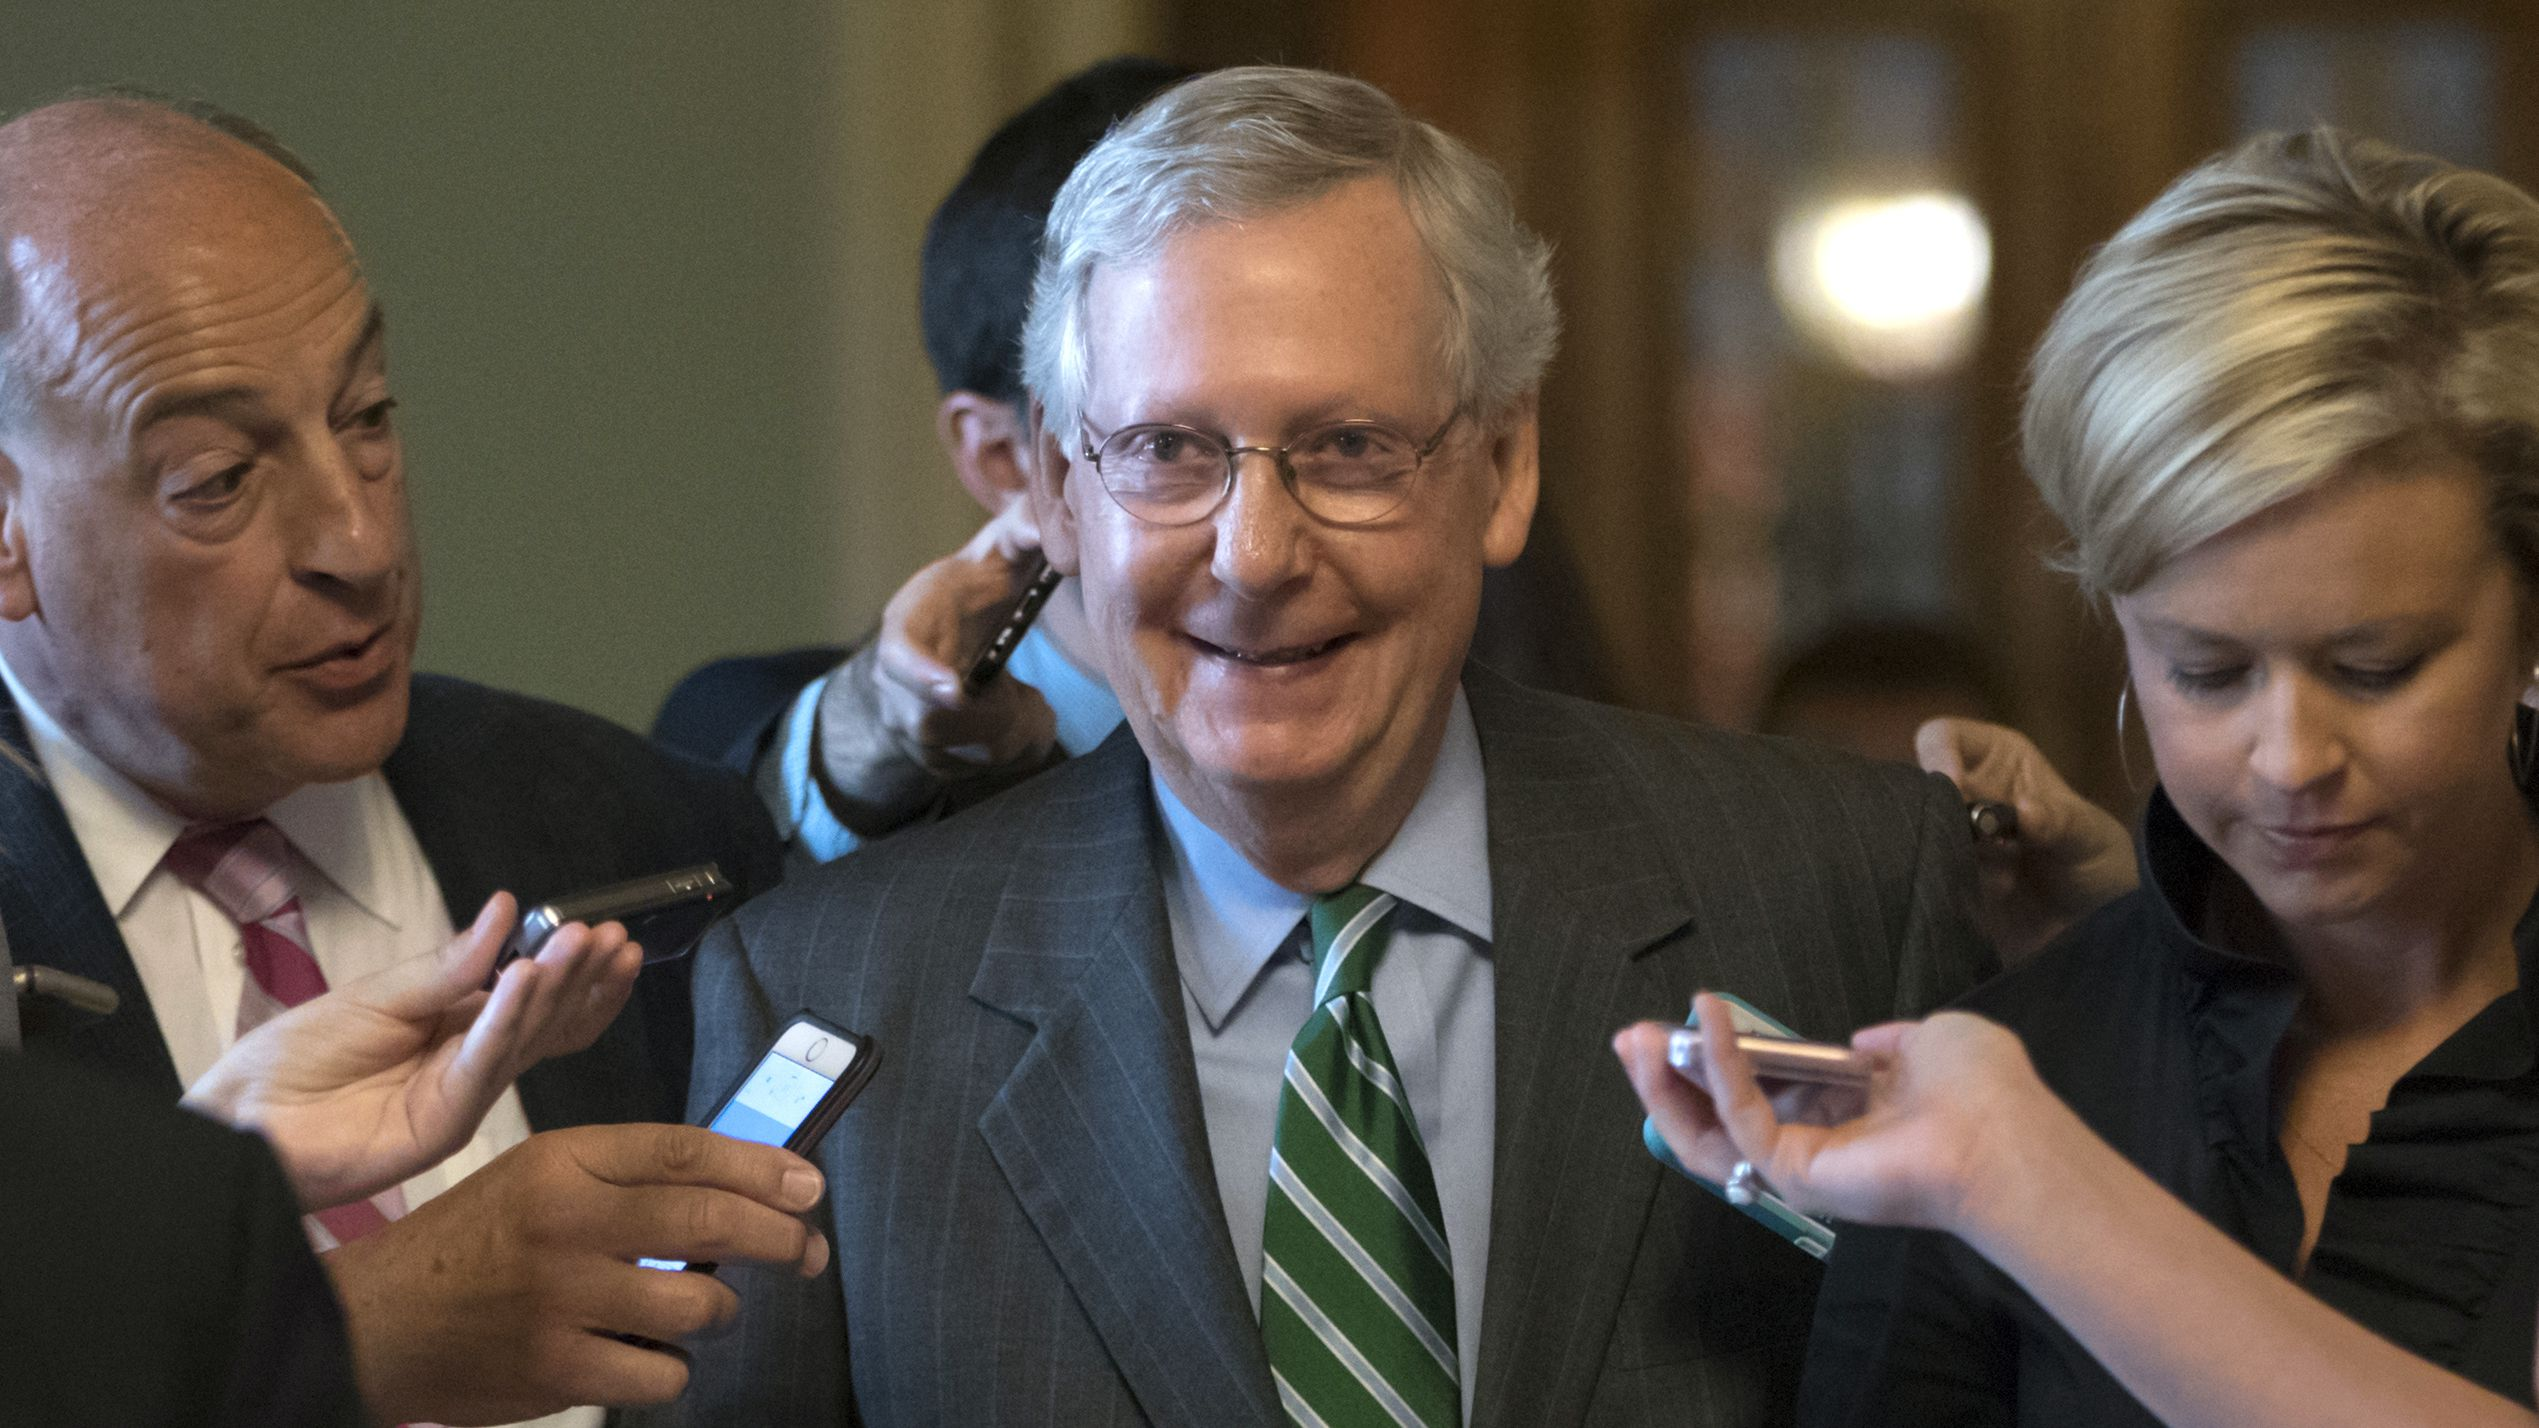 Senate Majority leader Mitch McConnell smiles as he leaves the chamber after announcing the release of the Republicans' healthcare bill which represents the party's long-awaited attempt to scuttle much of President Barack Obama's Affordable Care Act, at the Capitol in Washington, Thursday, June 22, 2017. The measure represents the Senate GOP's effort to achieve a top tier priority for President Donald Trump and virtually all Republican members of Congress.